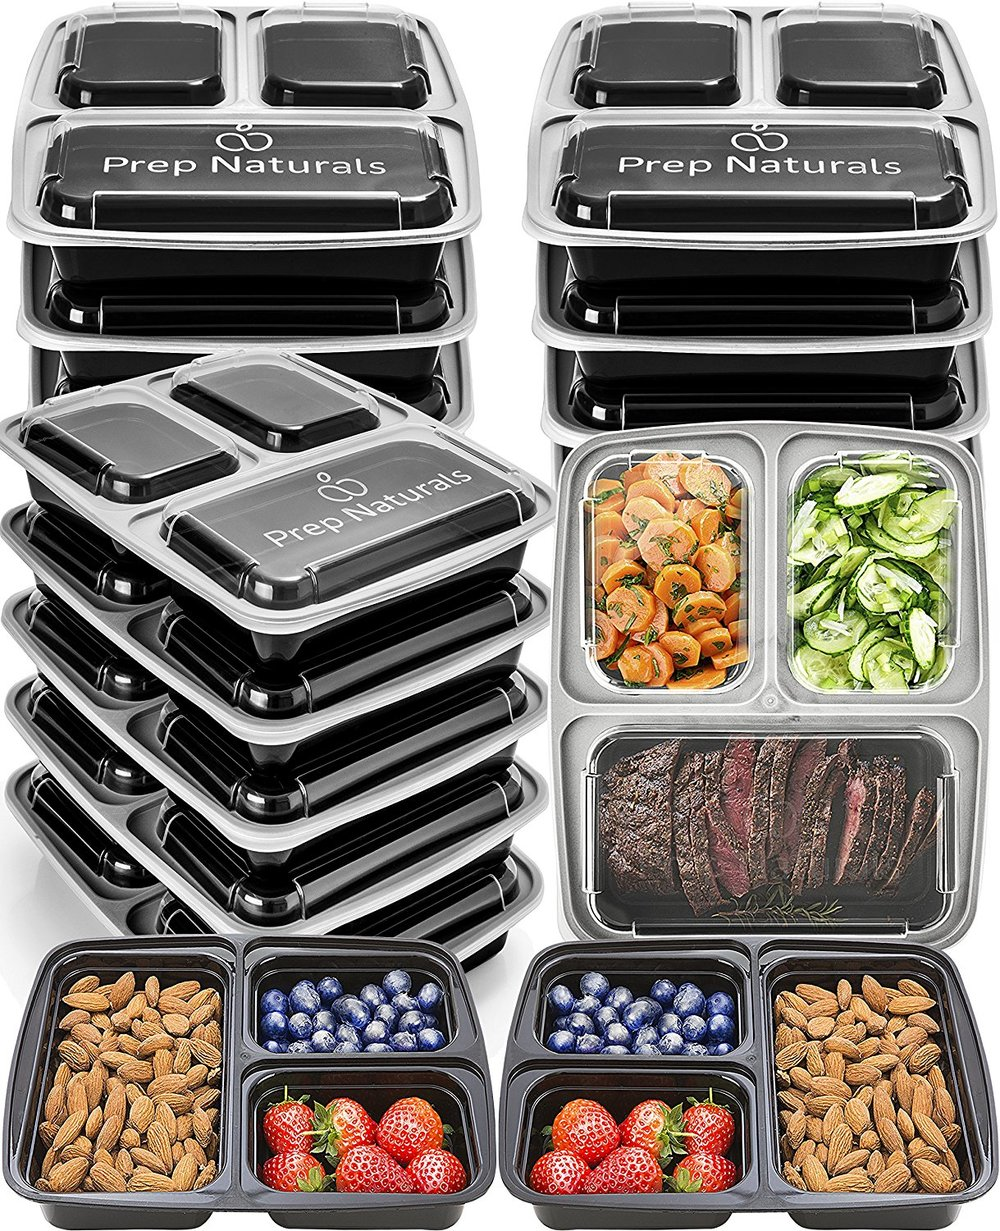 bento box 3 compartment meal prep containers